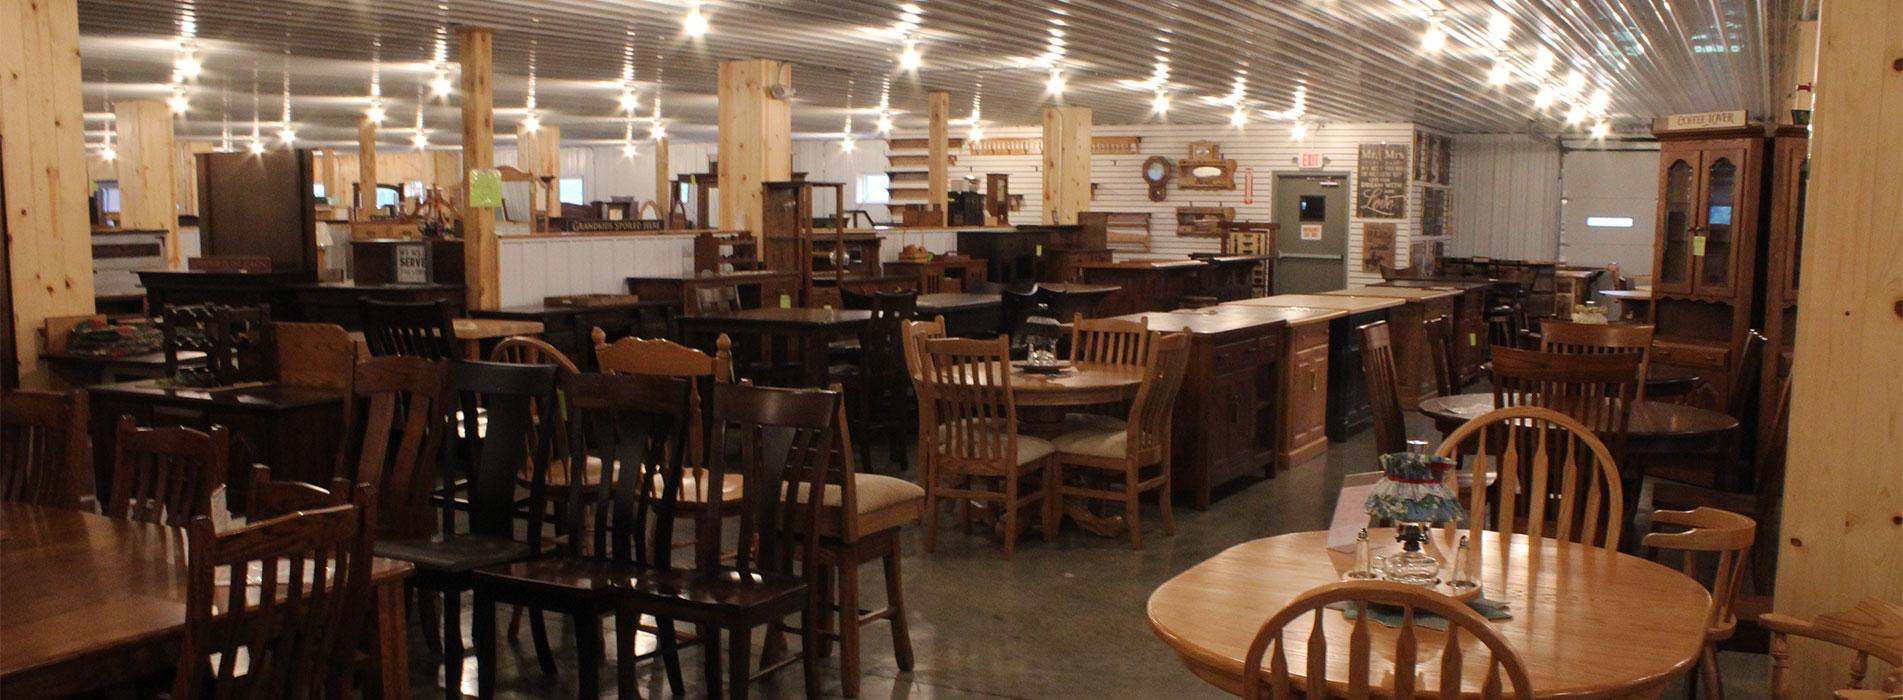 Cherry Valley Furniture Amish Country Marketplace